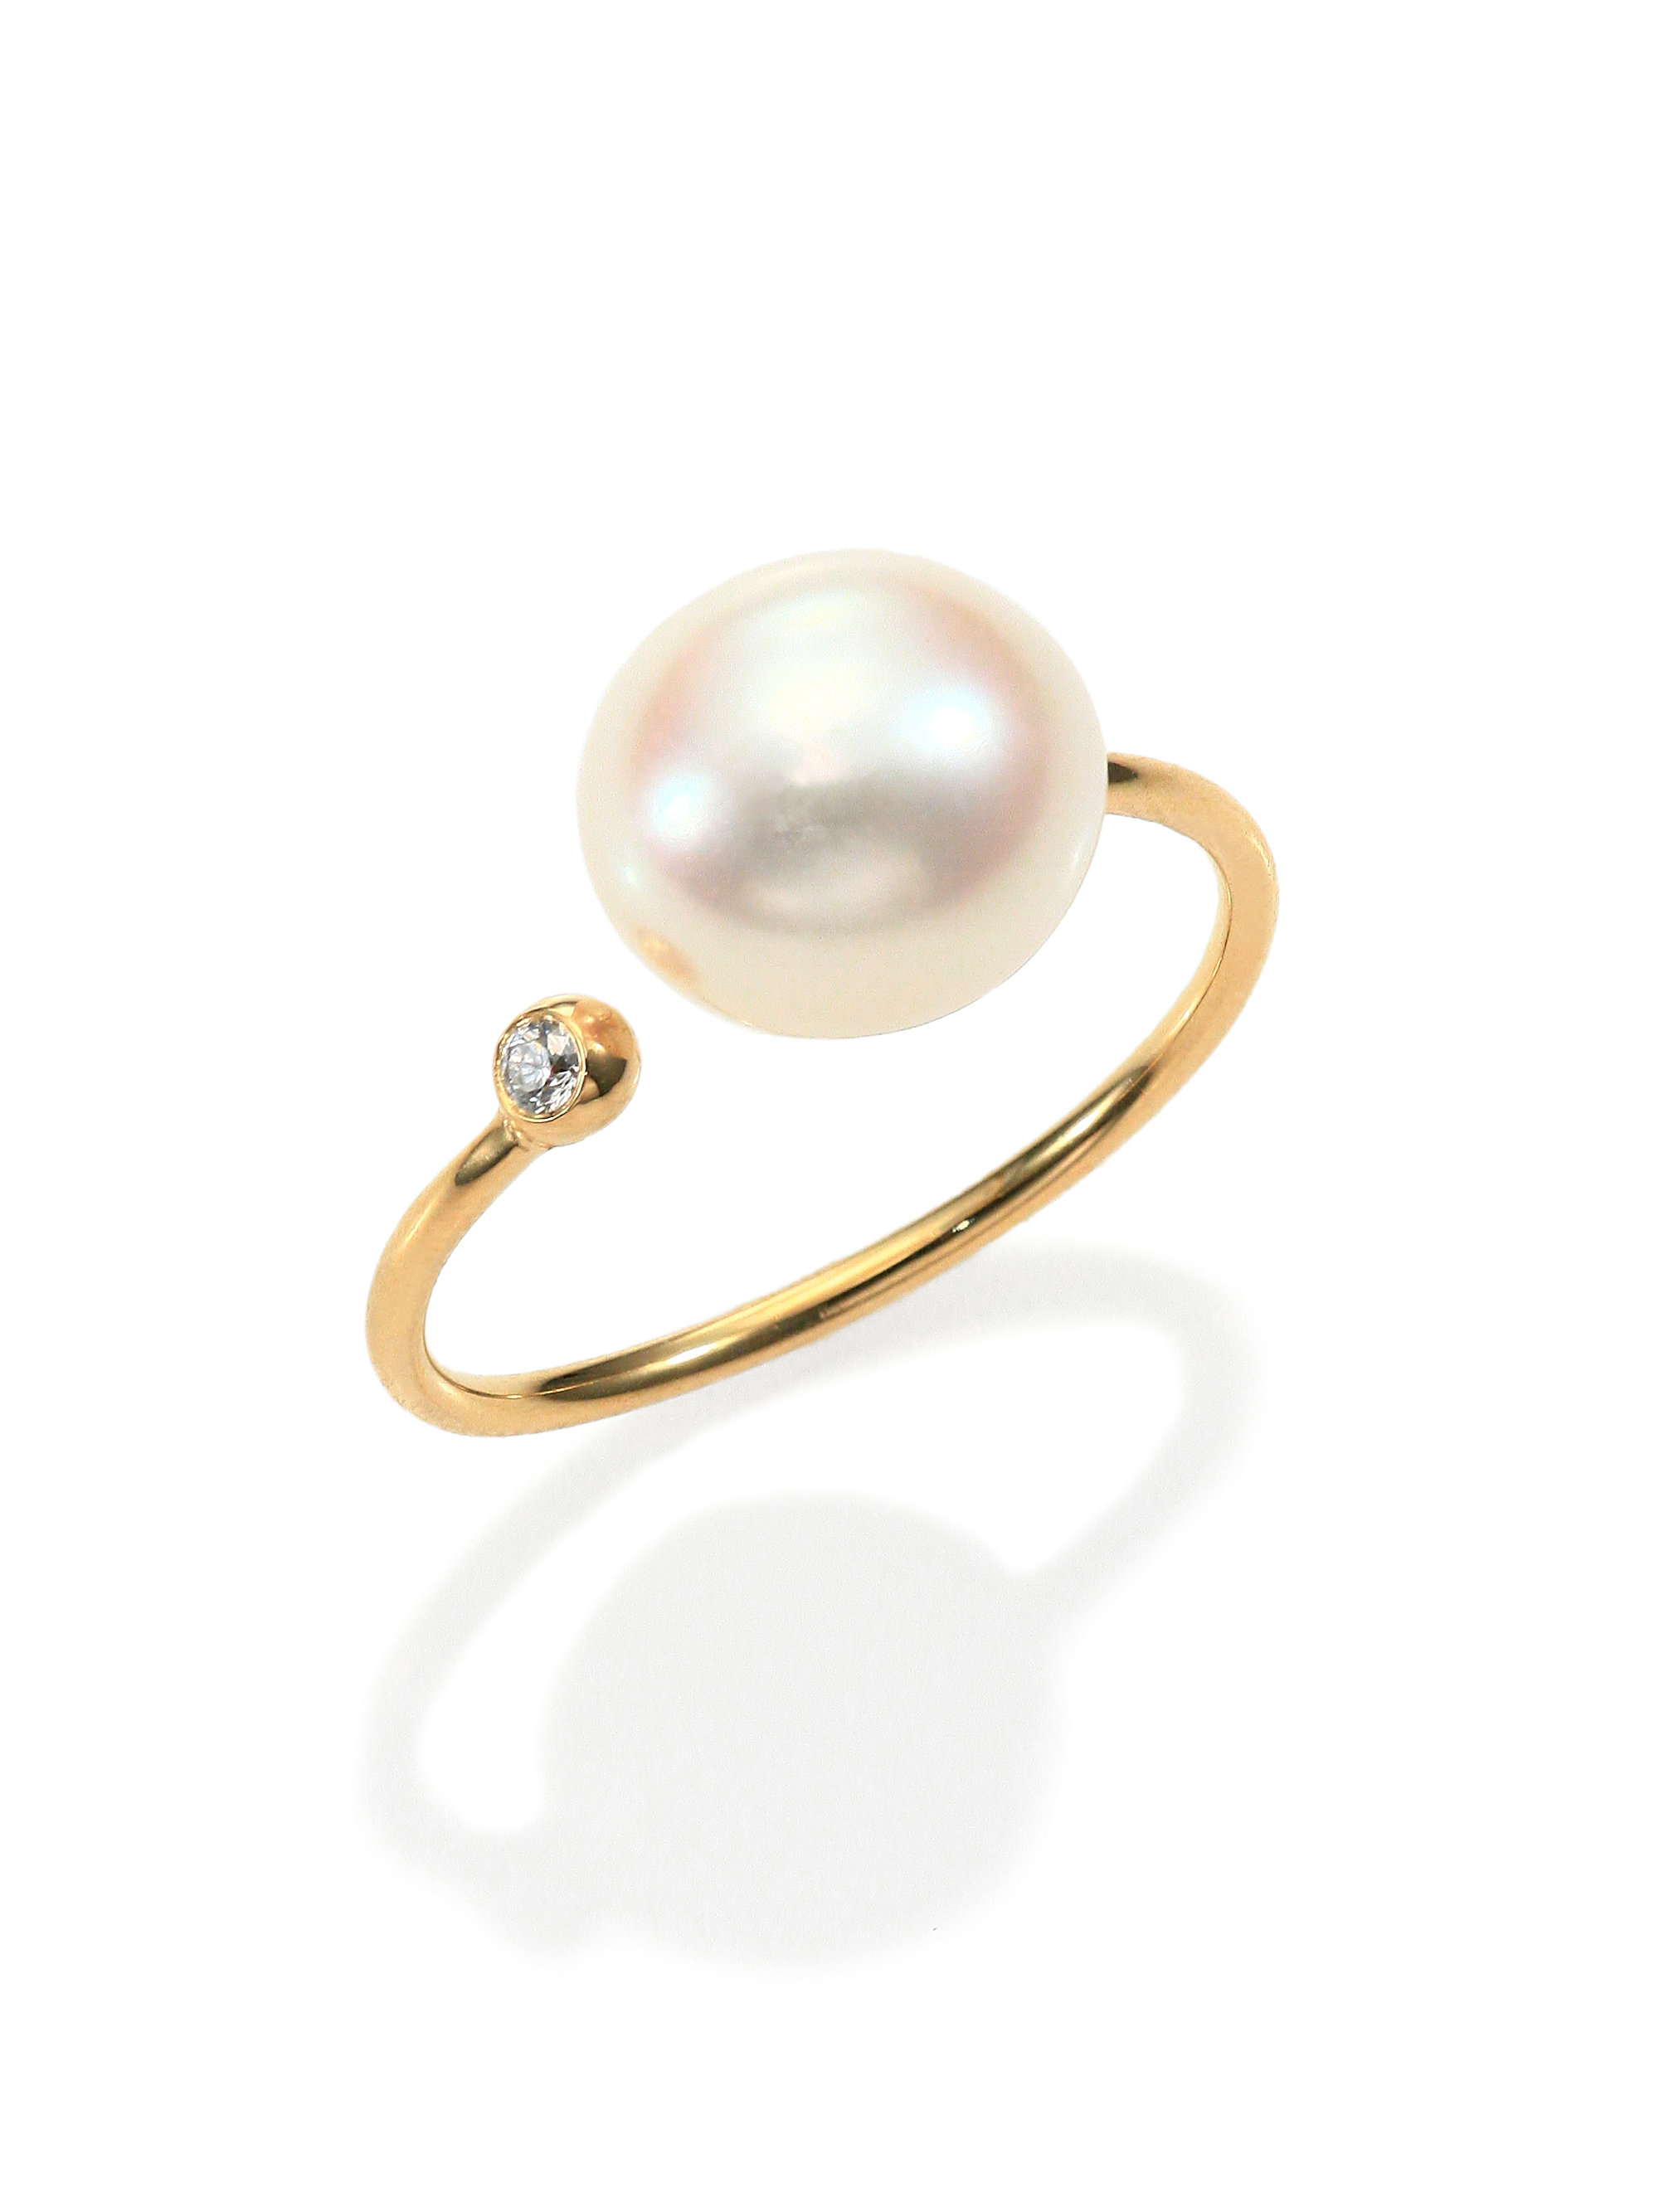 rings of white womens korloff round and gold pearl wedding diamond mother ring jewelry